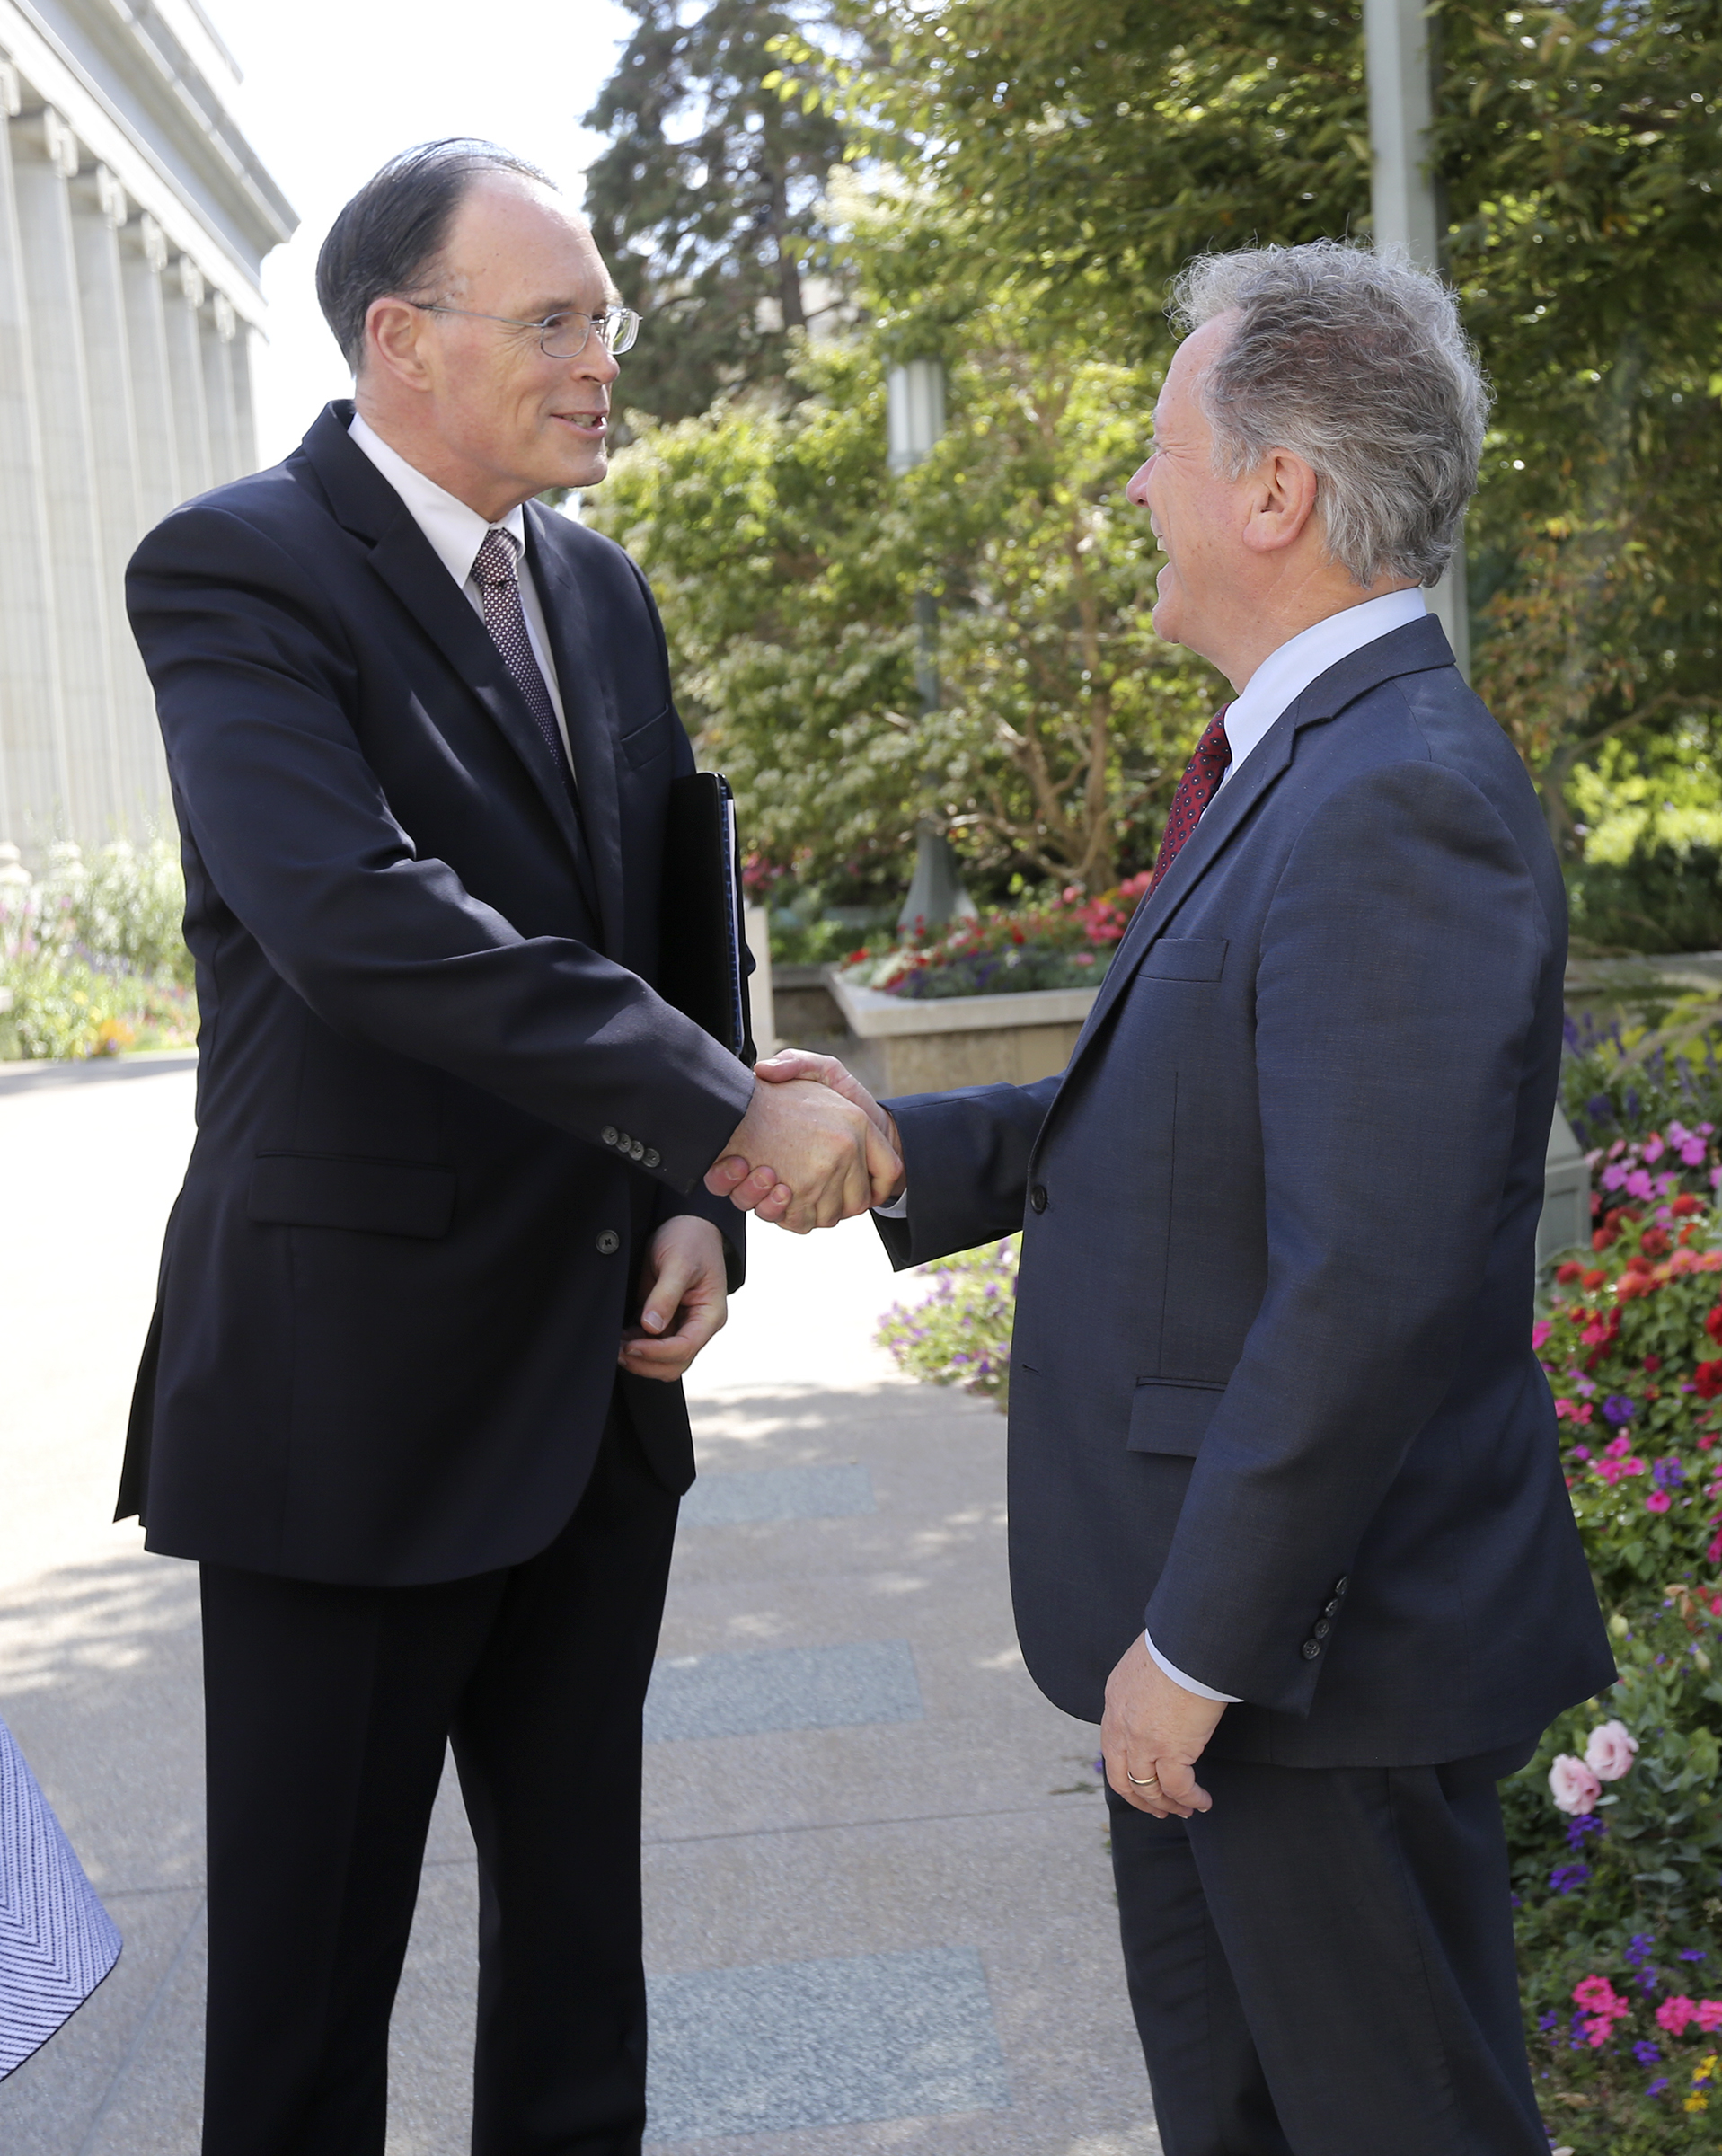 Bishop W. Christopher Waddell, second counselor in the Presiding Bishopric of The Church of Jesus Christ of Latter-day Saints, shakes hands with David Beasley, United Nations World Food Programme executive director, after they talked with members of the media at Temple Square in Salt Lake City on Monday, Sept. 30, 2019.